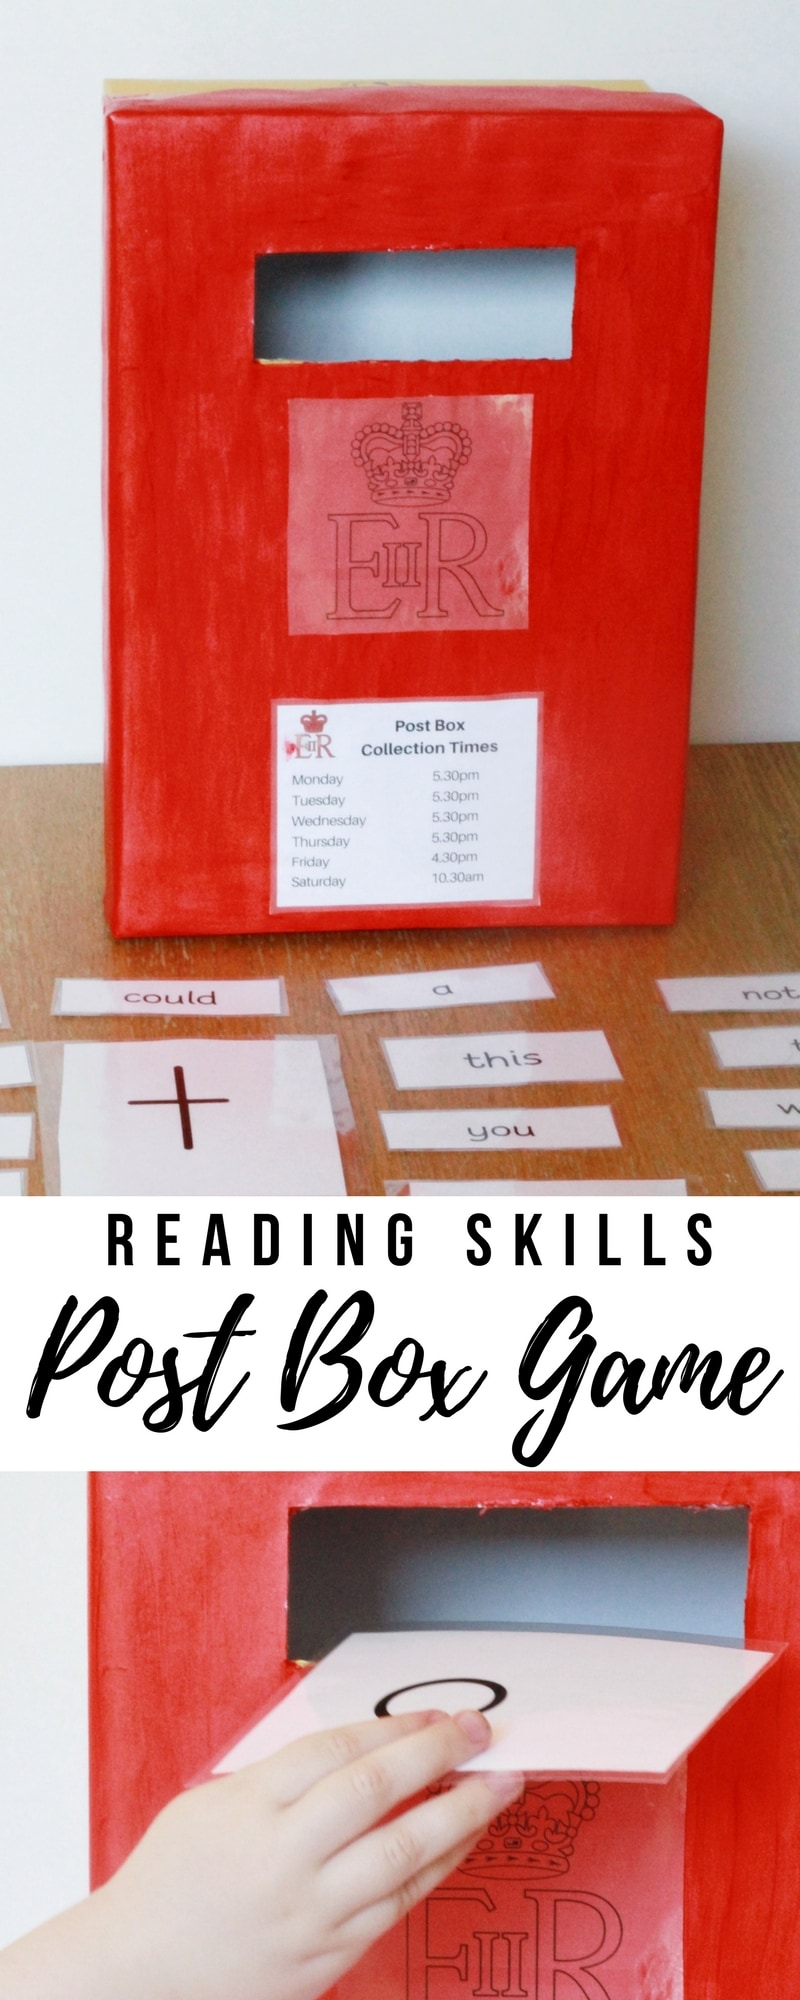 Post Box Reading Skills Game - A game to use with children aged 2-10 in for a fun way to develop their reading skills. #reading #skills #educationalgames #kids #children #homeed #homeschool